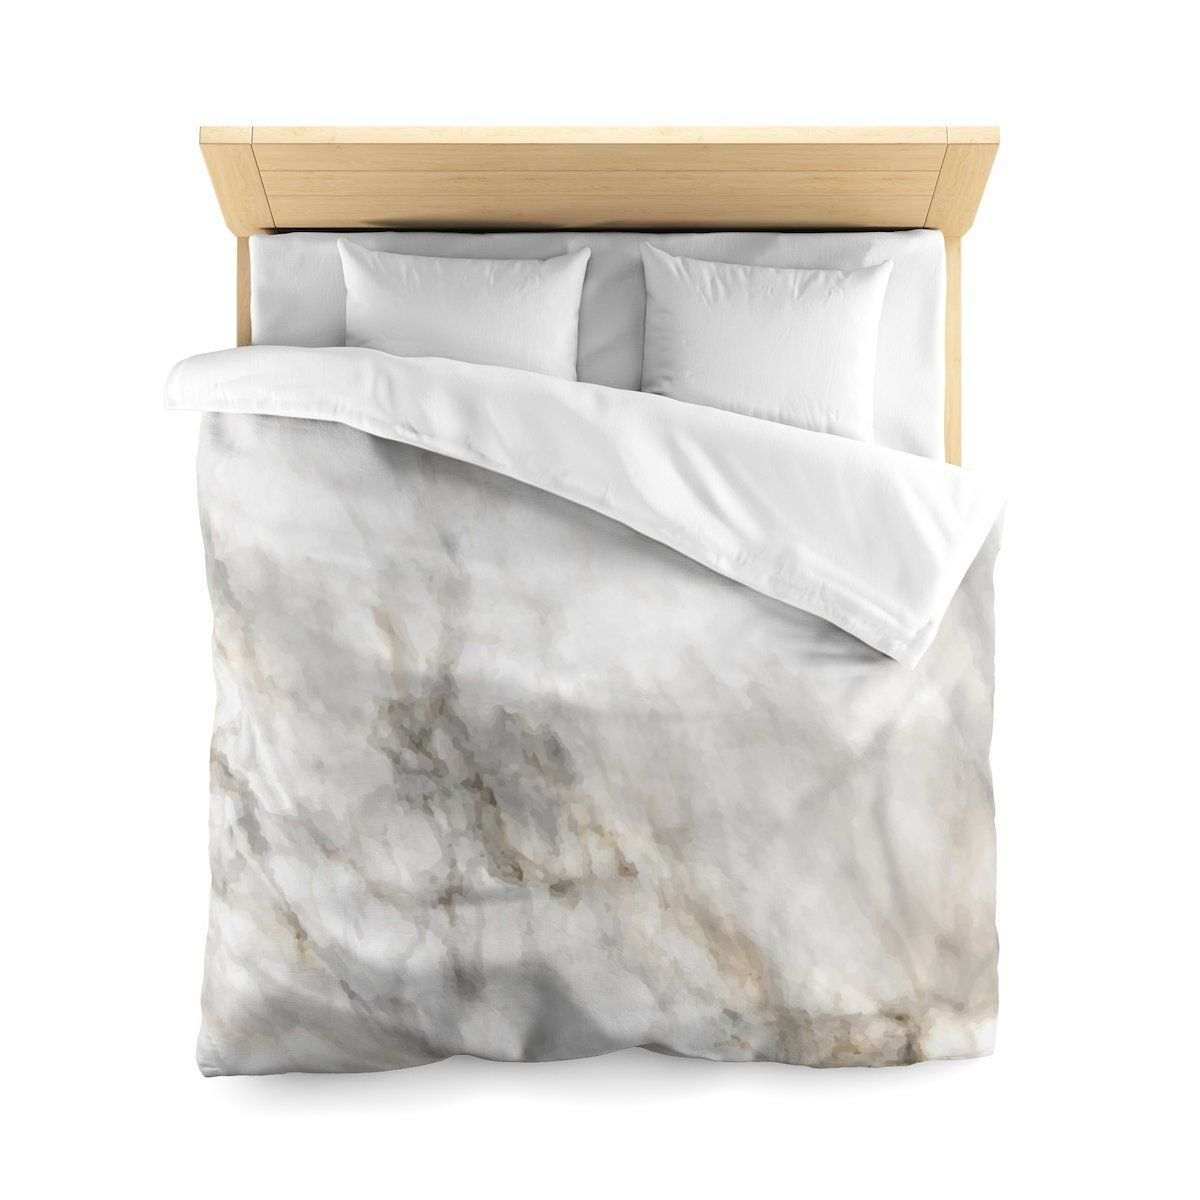 Marble Comforter Marble Bedding Marble Bedroom Decor Marble